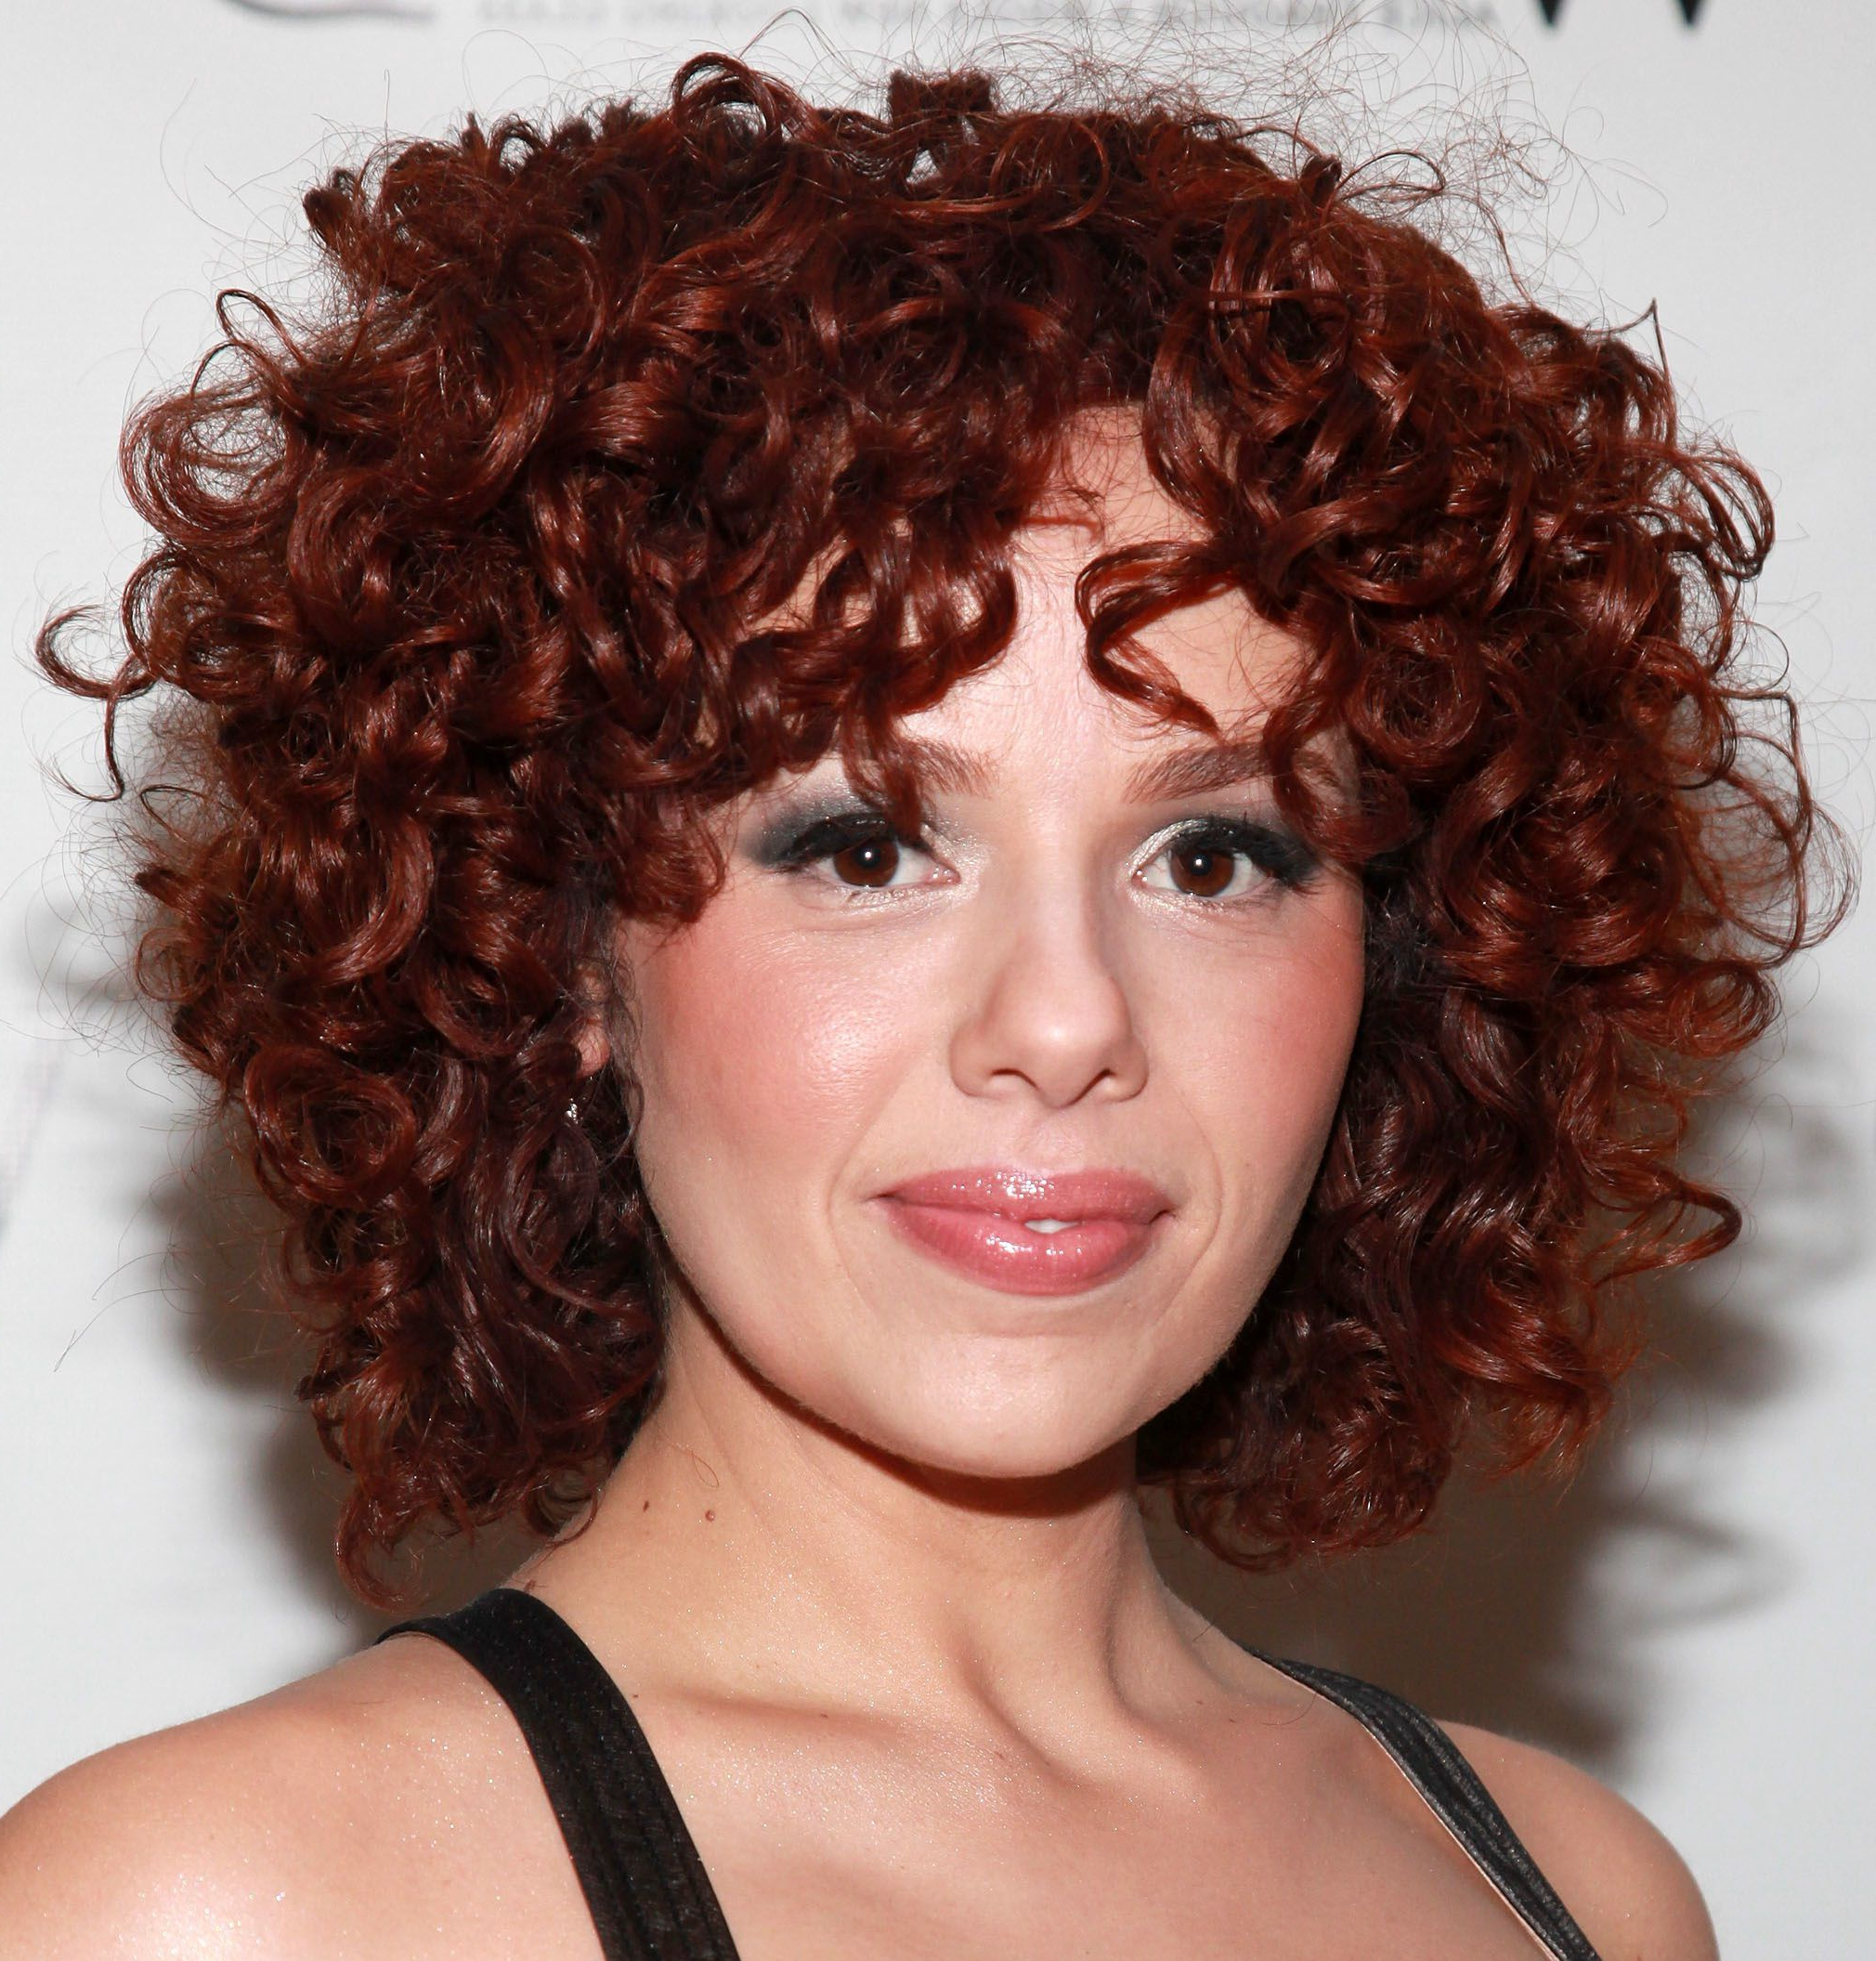 22 Fun And Sexy Hairstyles For Naturally Curly Hair Inside Most Recent Medium Haircuts For Naturally Curly Hair And Round Face (View 2 of 20)